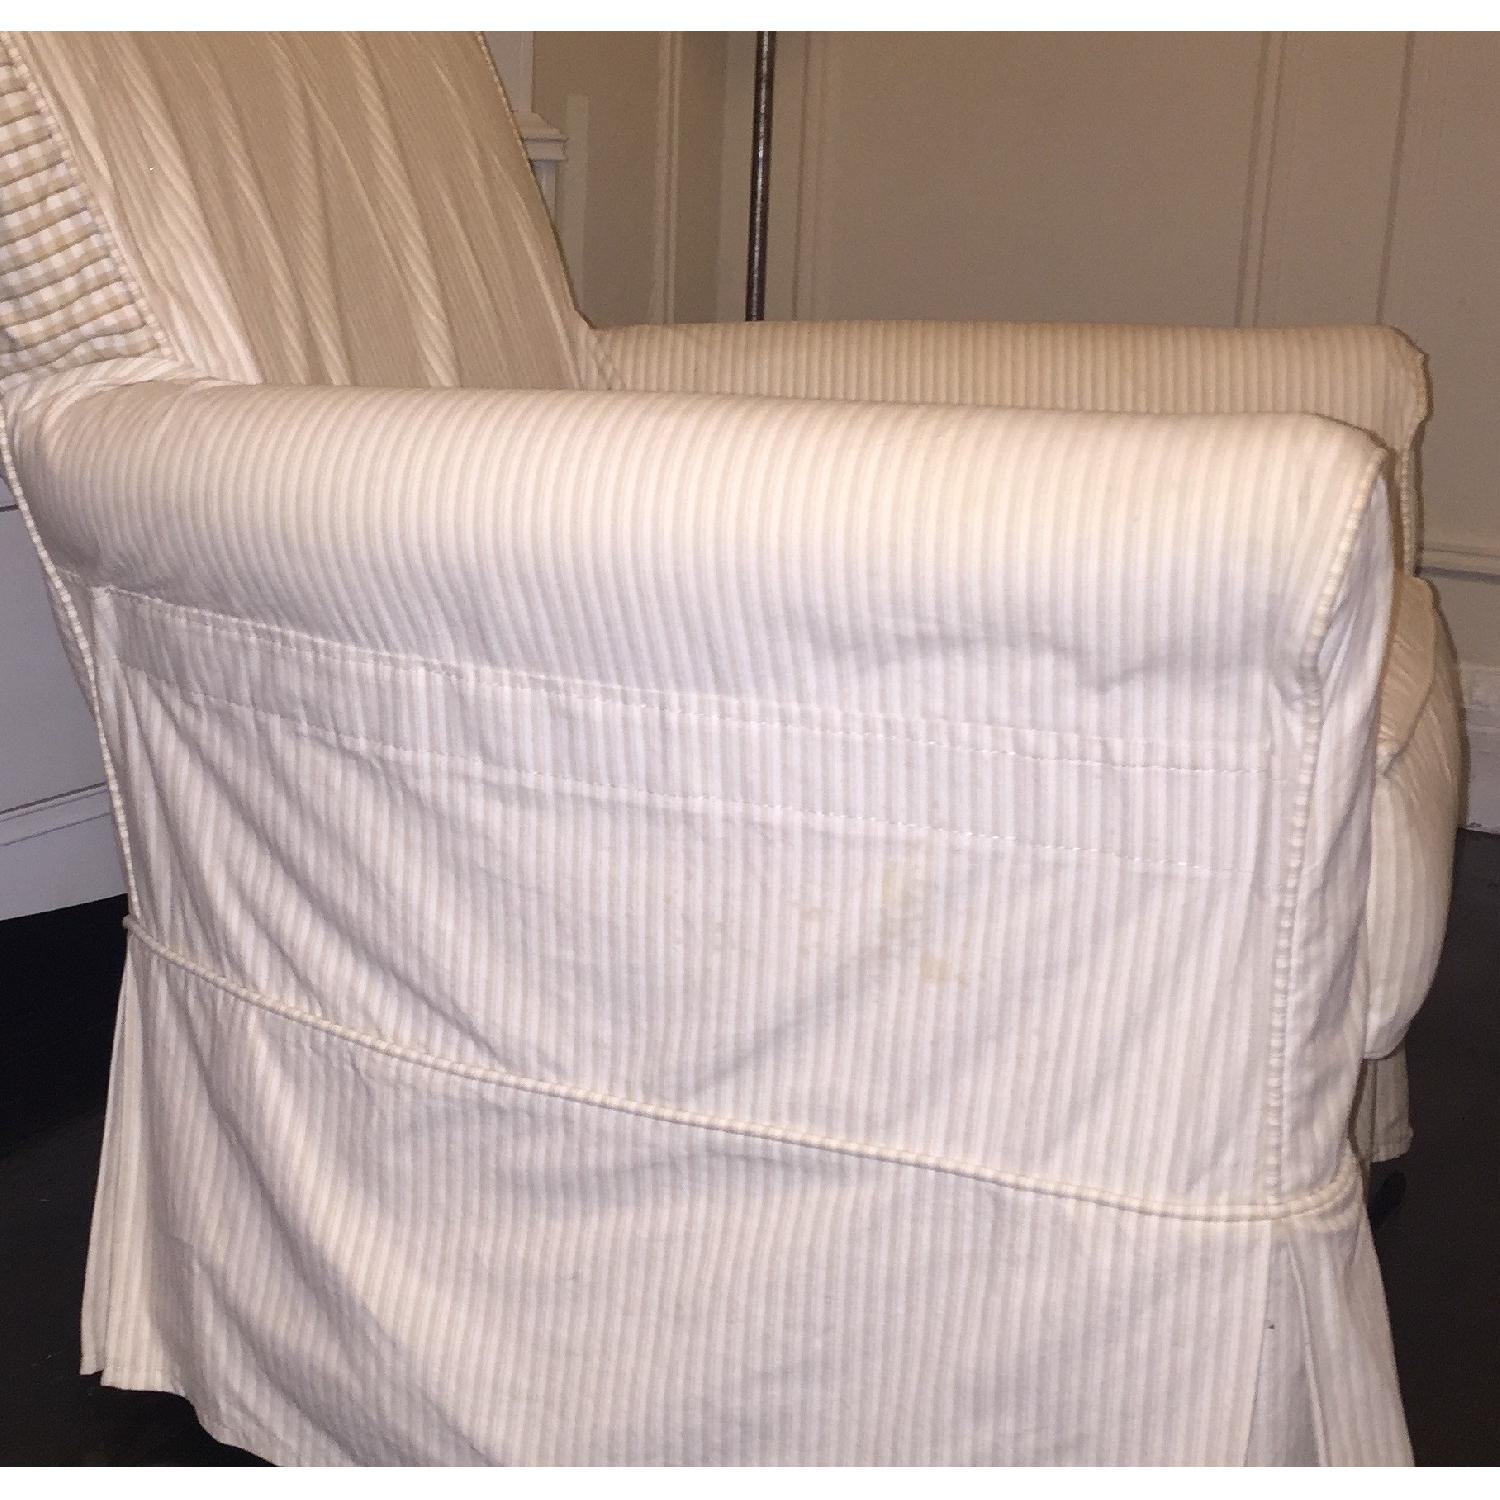 Crate & Barrel Avery Swivel Glider with w/ Pinstripe Slipcover-13